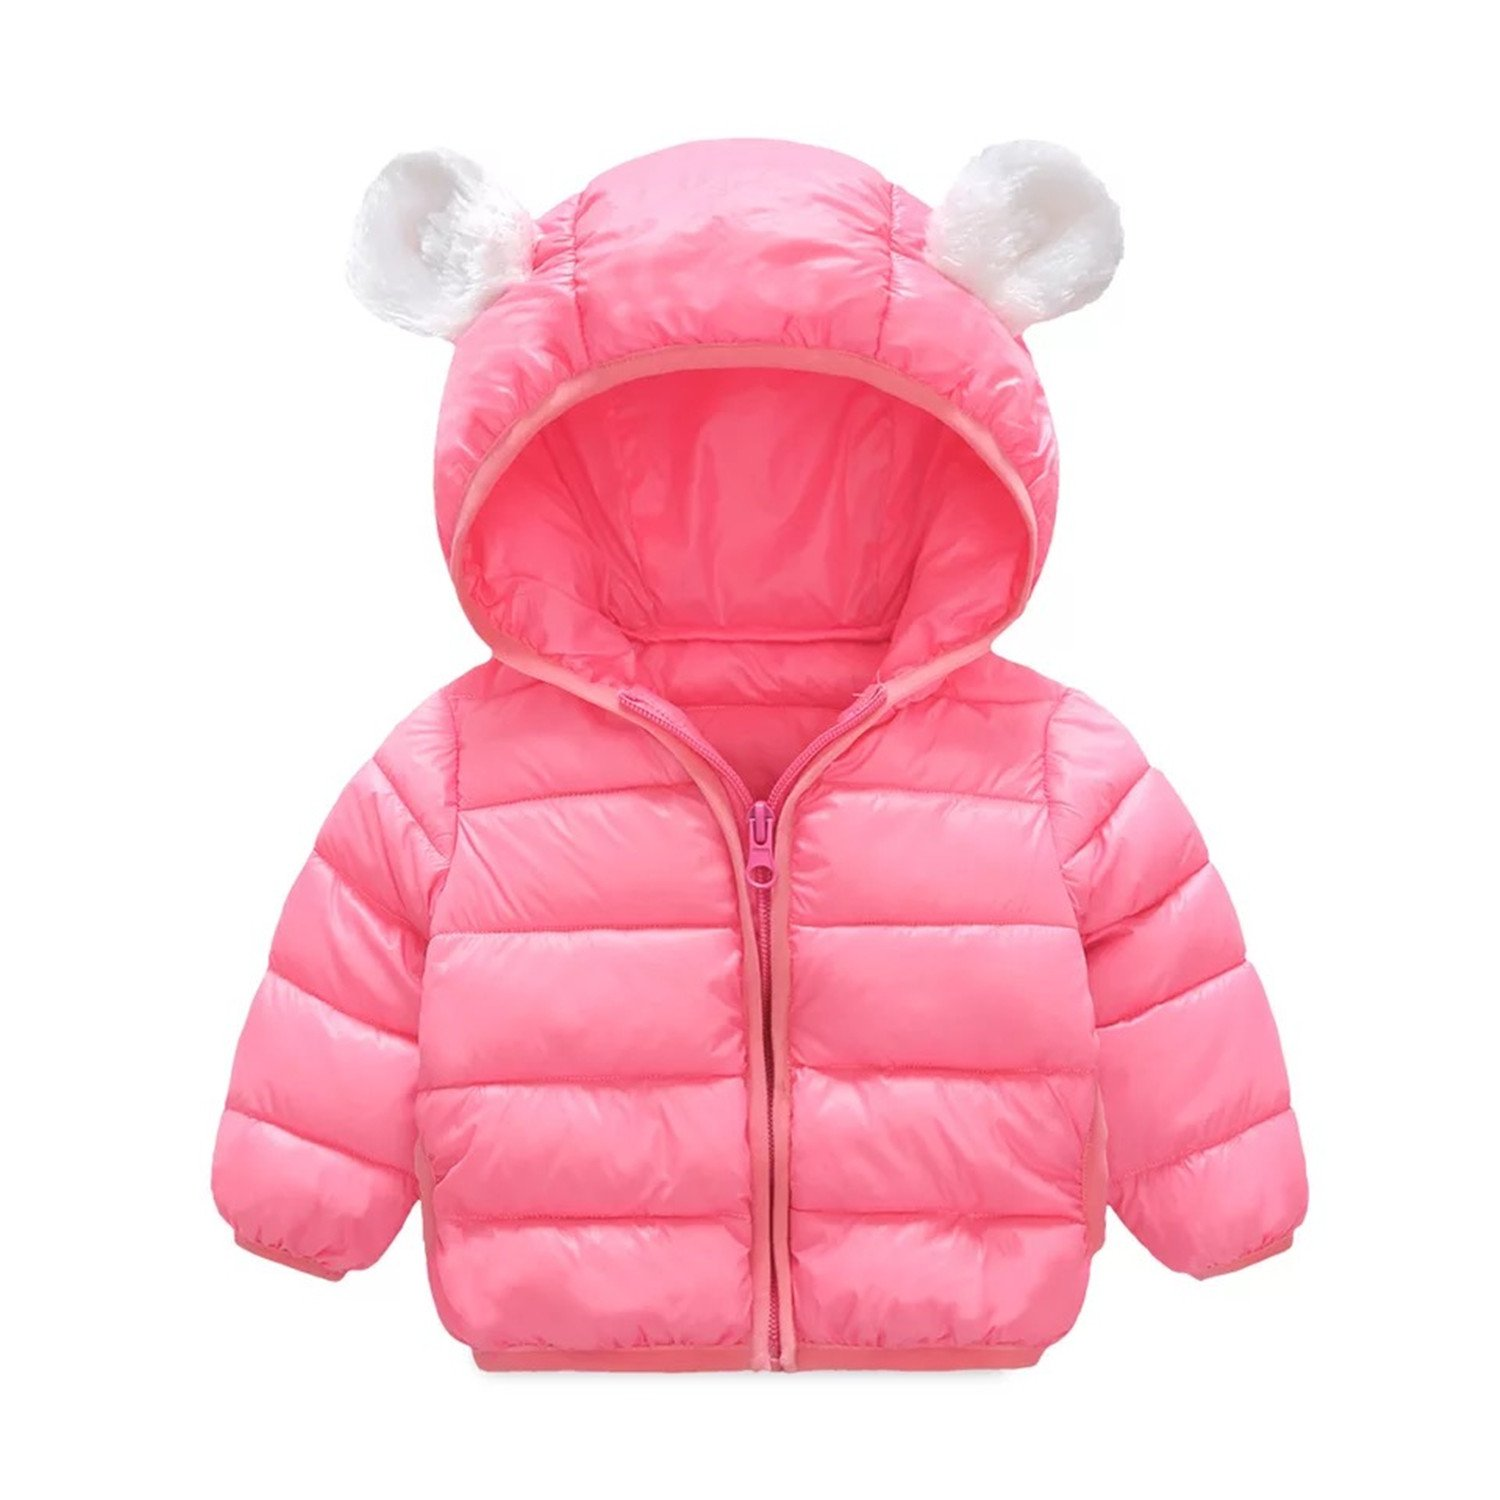 Infant and Toddler Baby Boys Girls Winter Warm Cotton Puffer Cartoon Coats Kids Thicken Jacket Outerwear